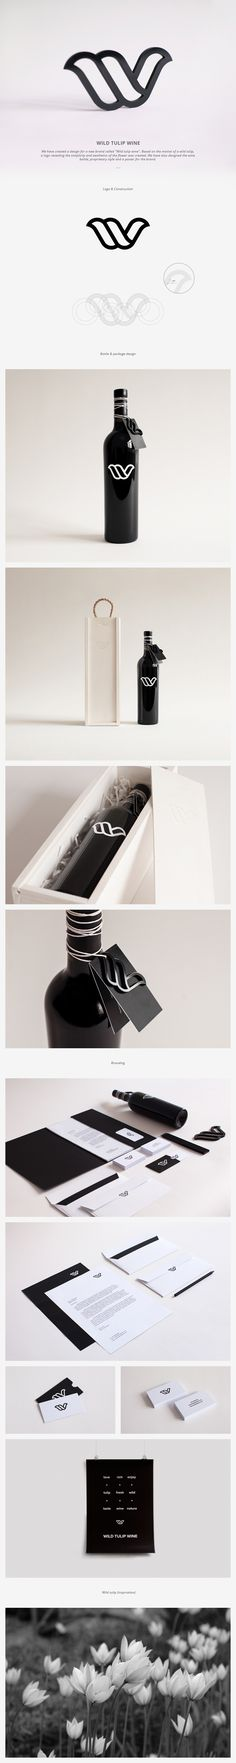 Tulip #wine #packaging #branding PD